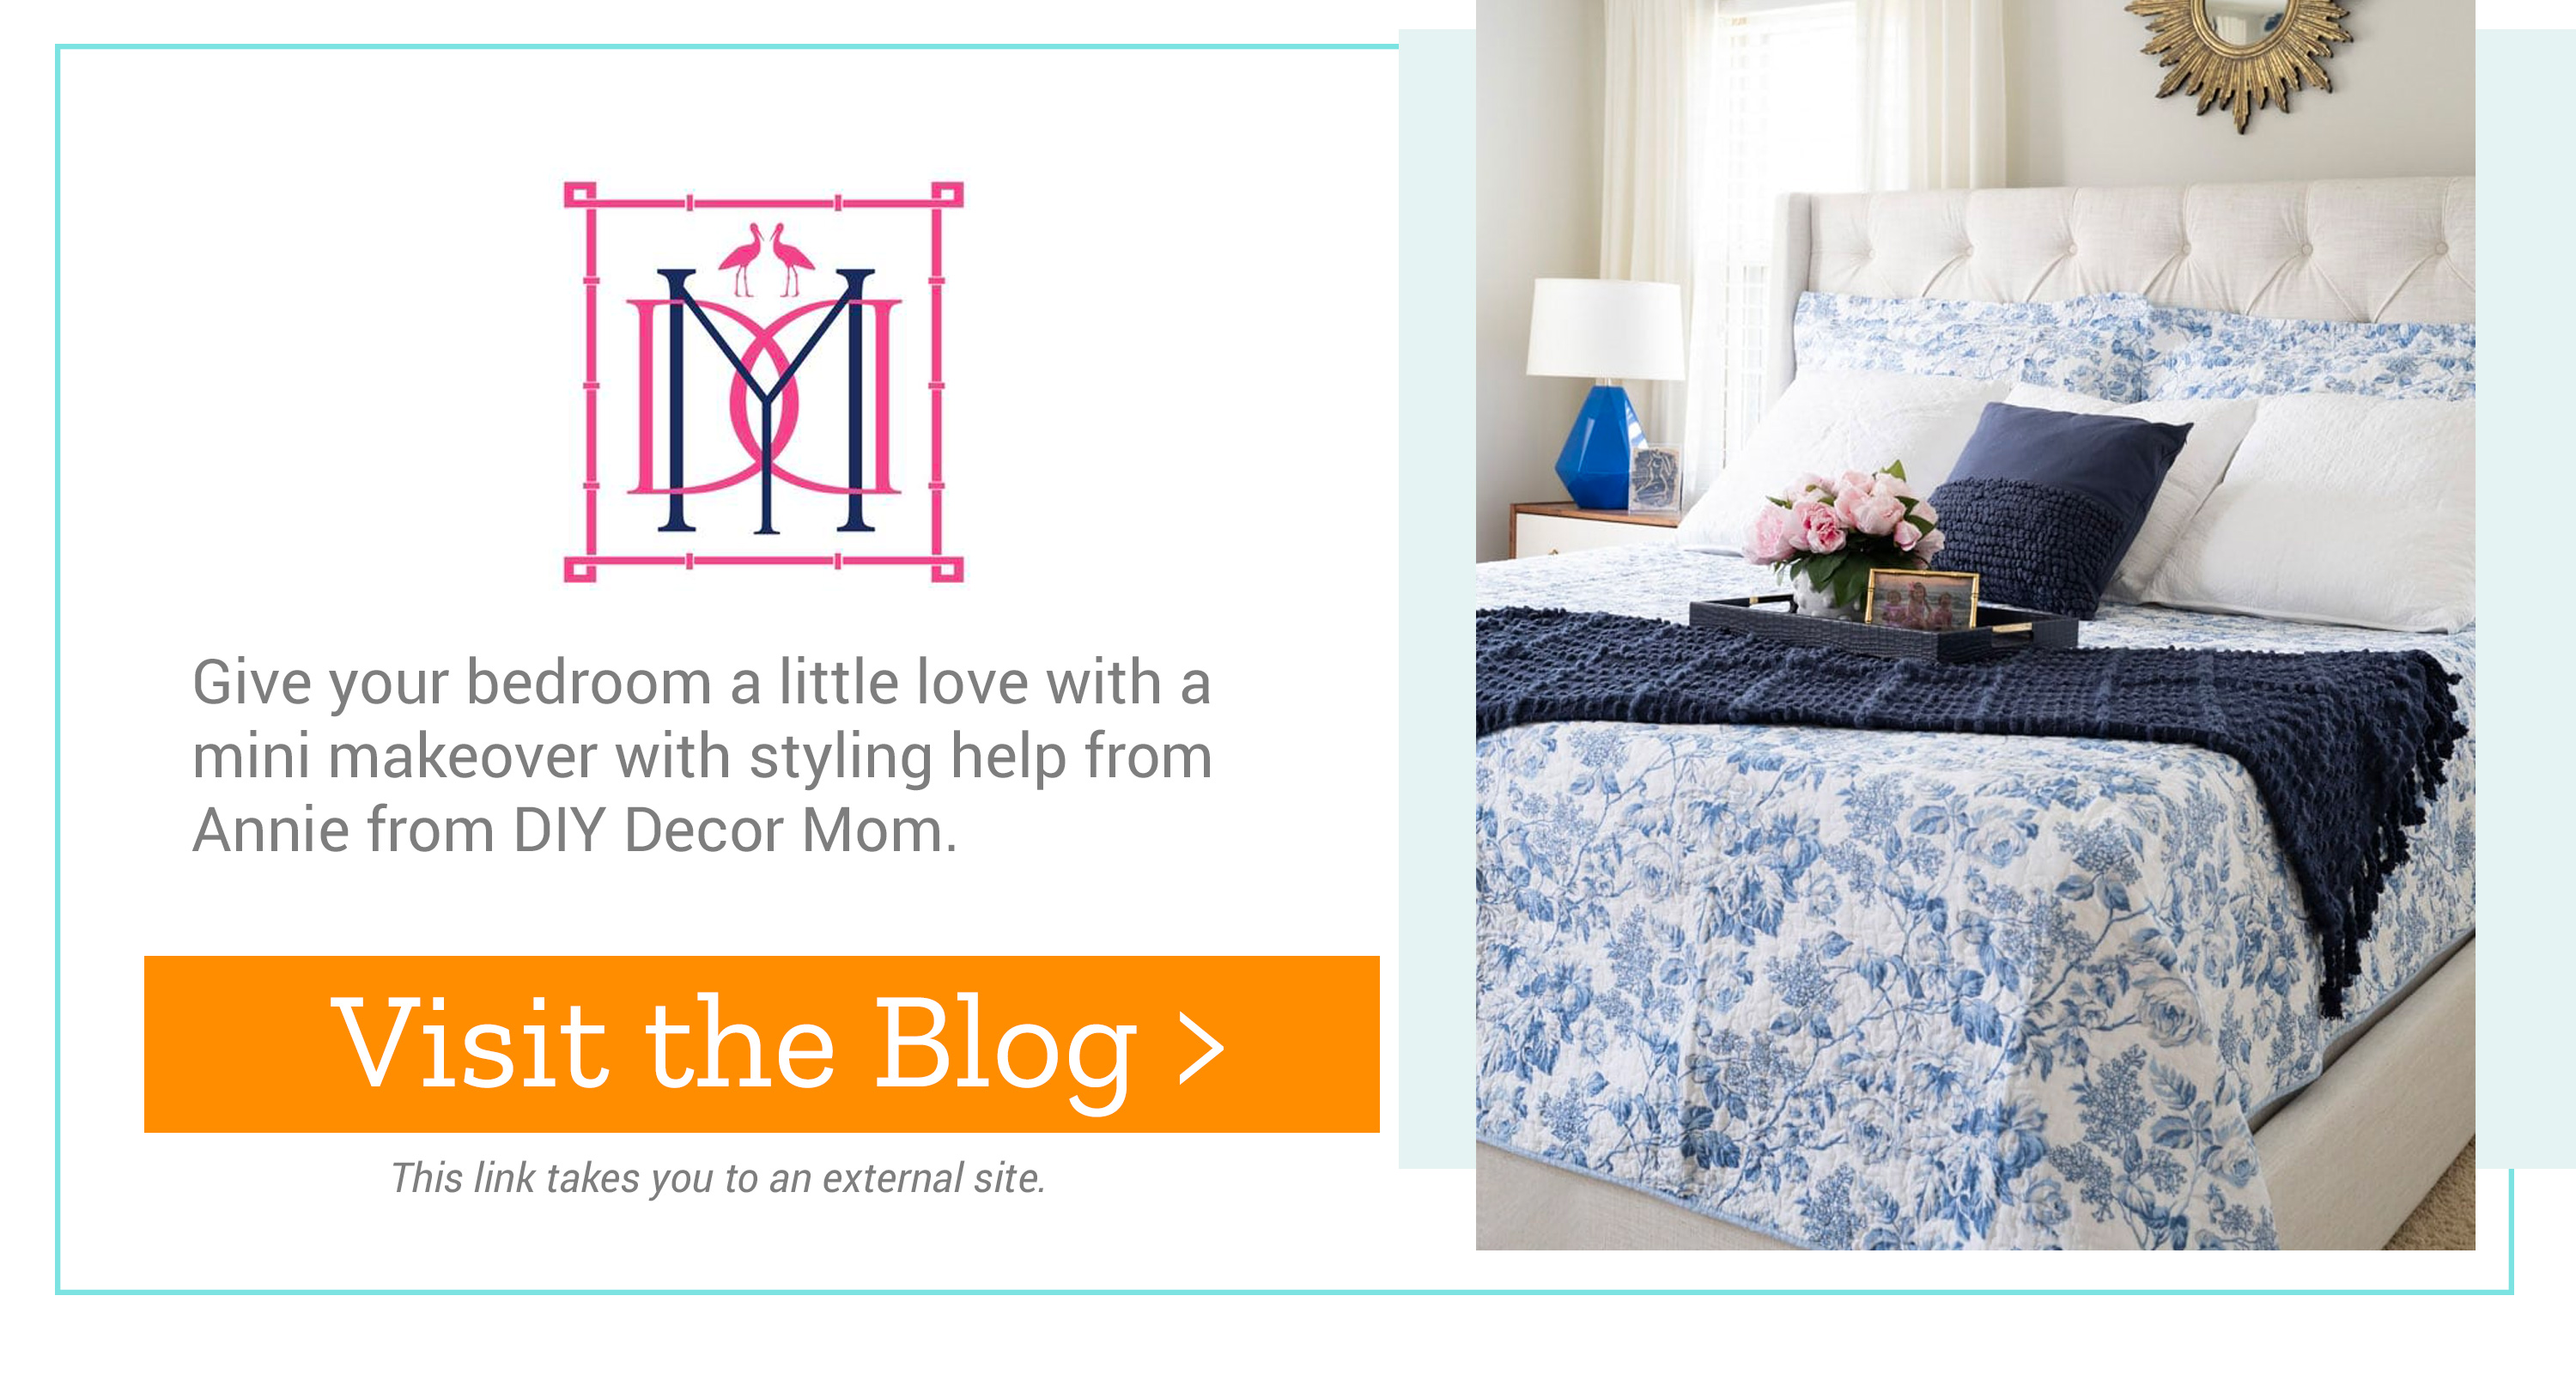 DIY Decor Mom - Give your bedroom a little love with a mini makeover with styling help from Annie from DIY Decor Mom. Visit the Blog >